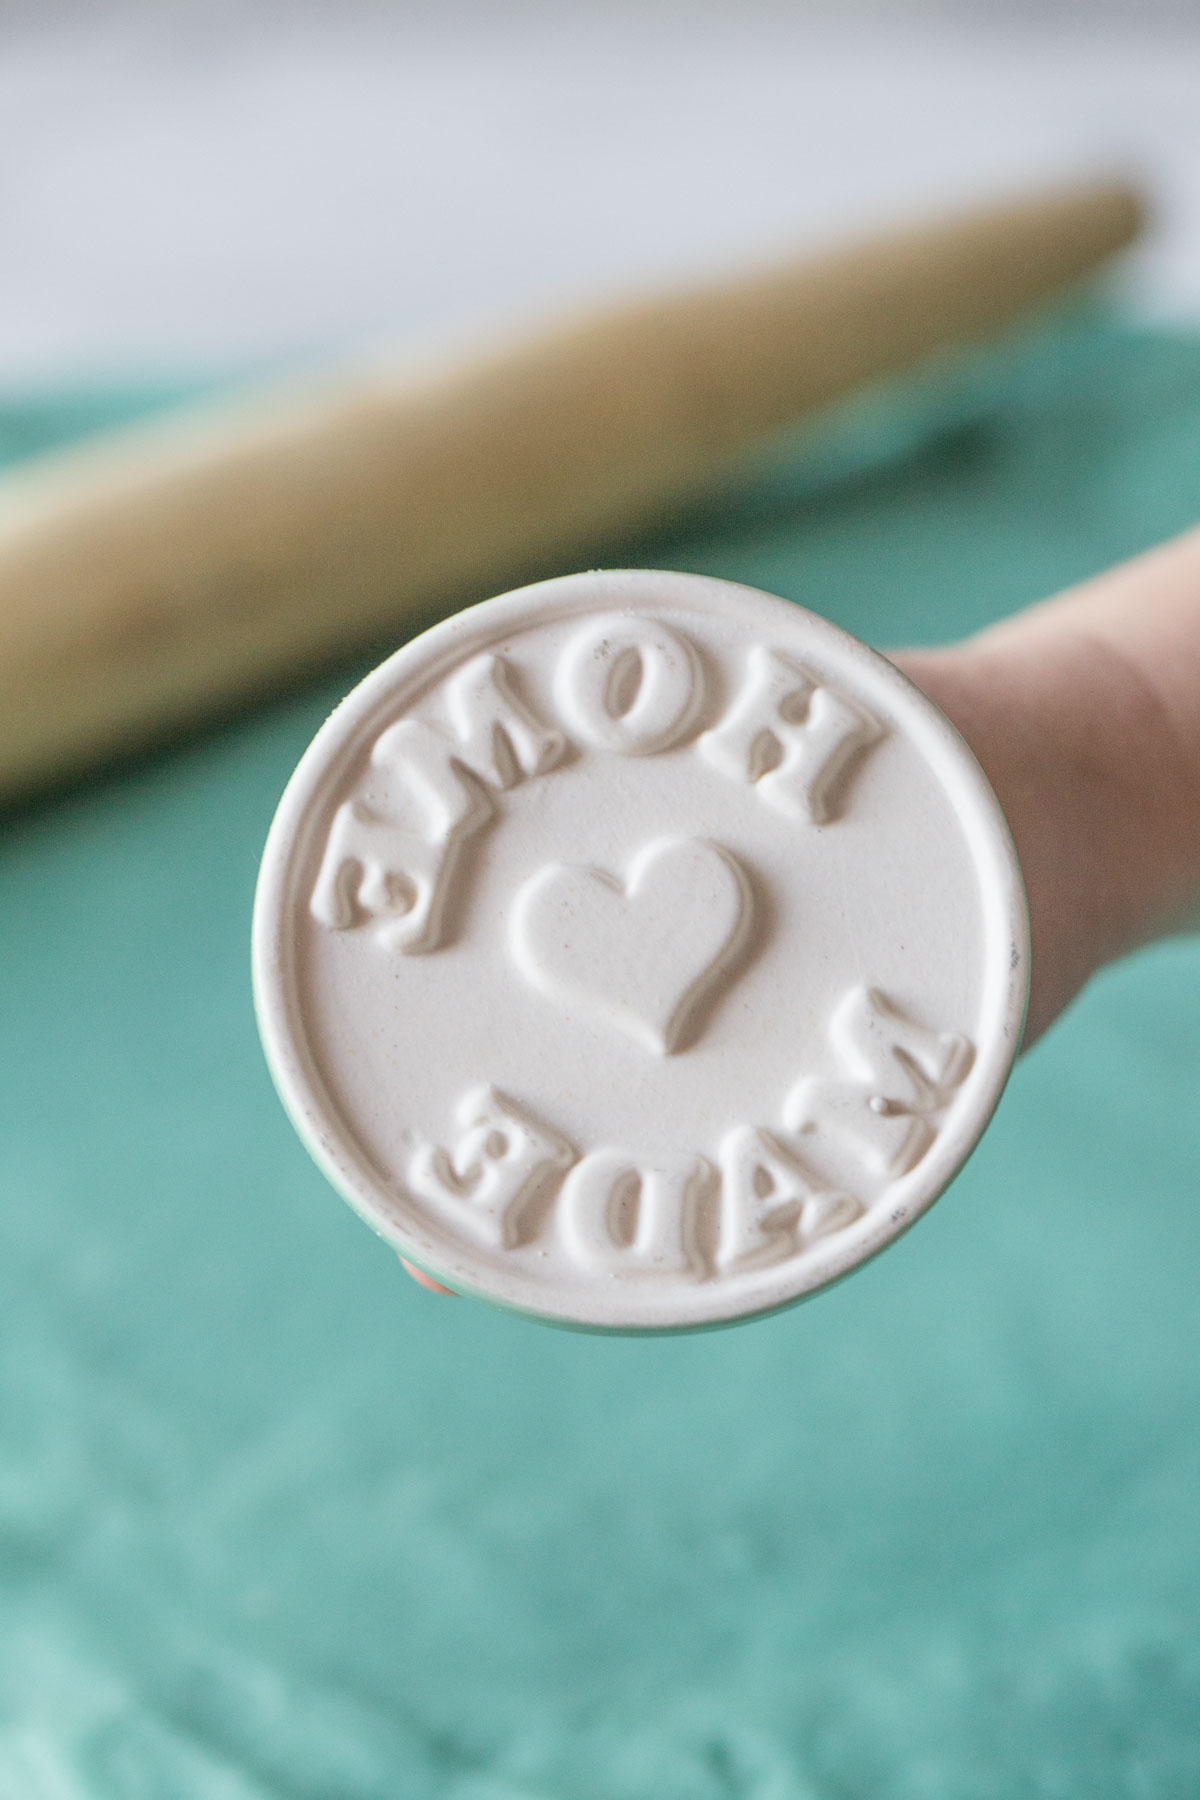 Close up view of playdough stamp that says home made.